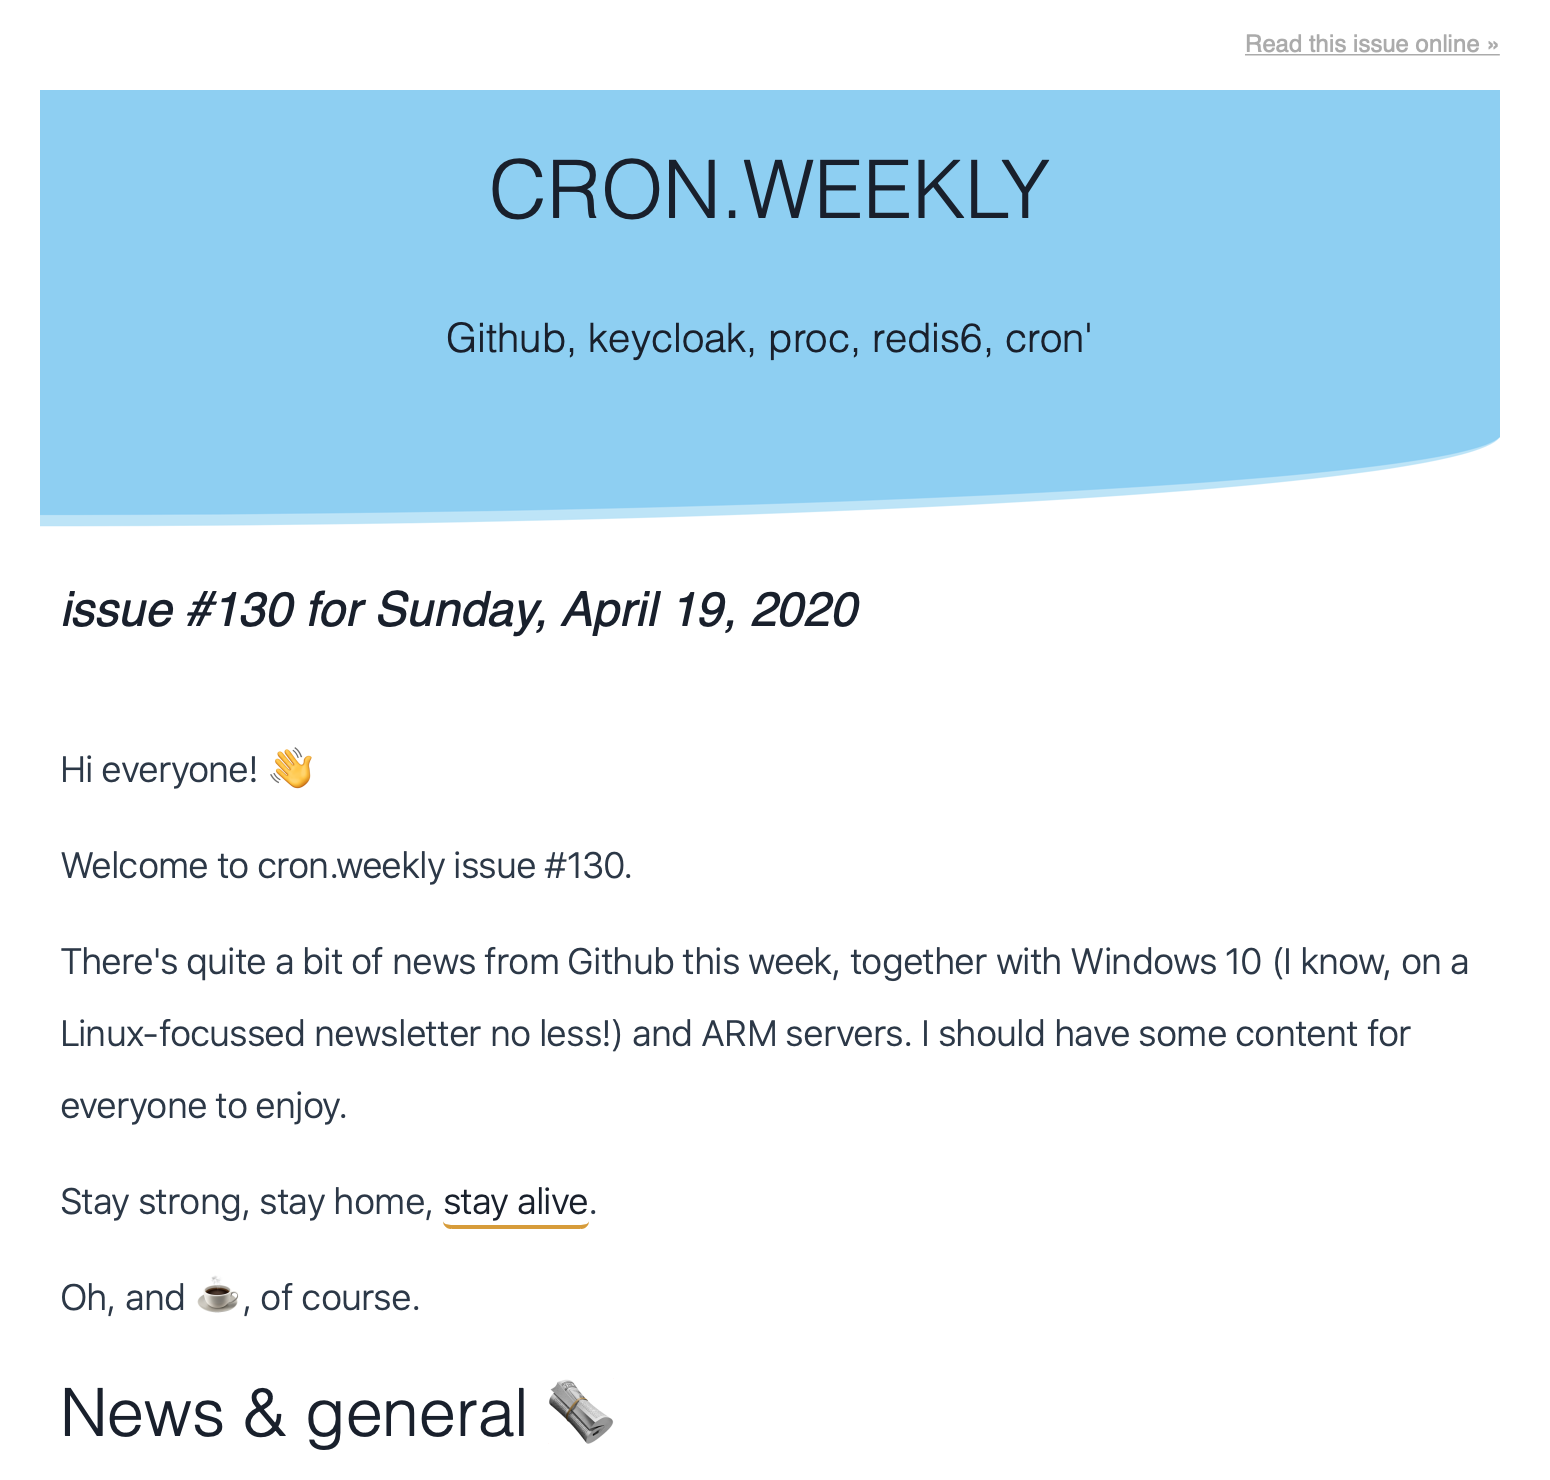 HTML view of the cron.weekly newsletter